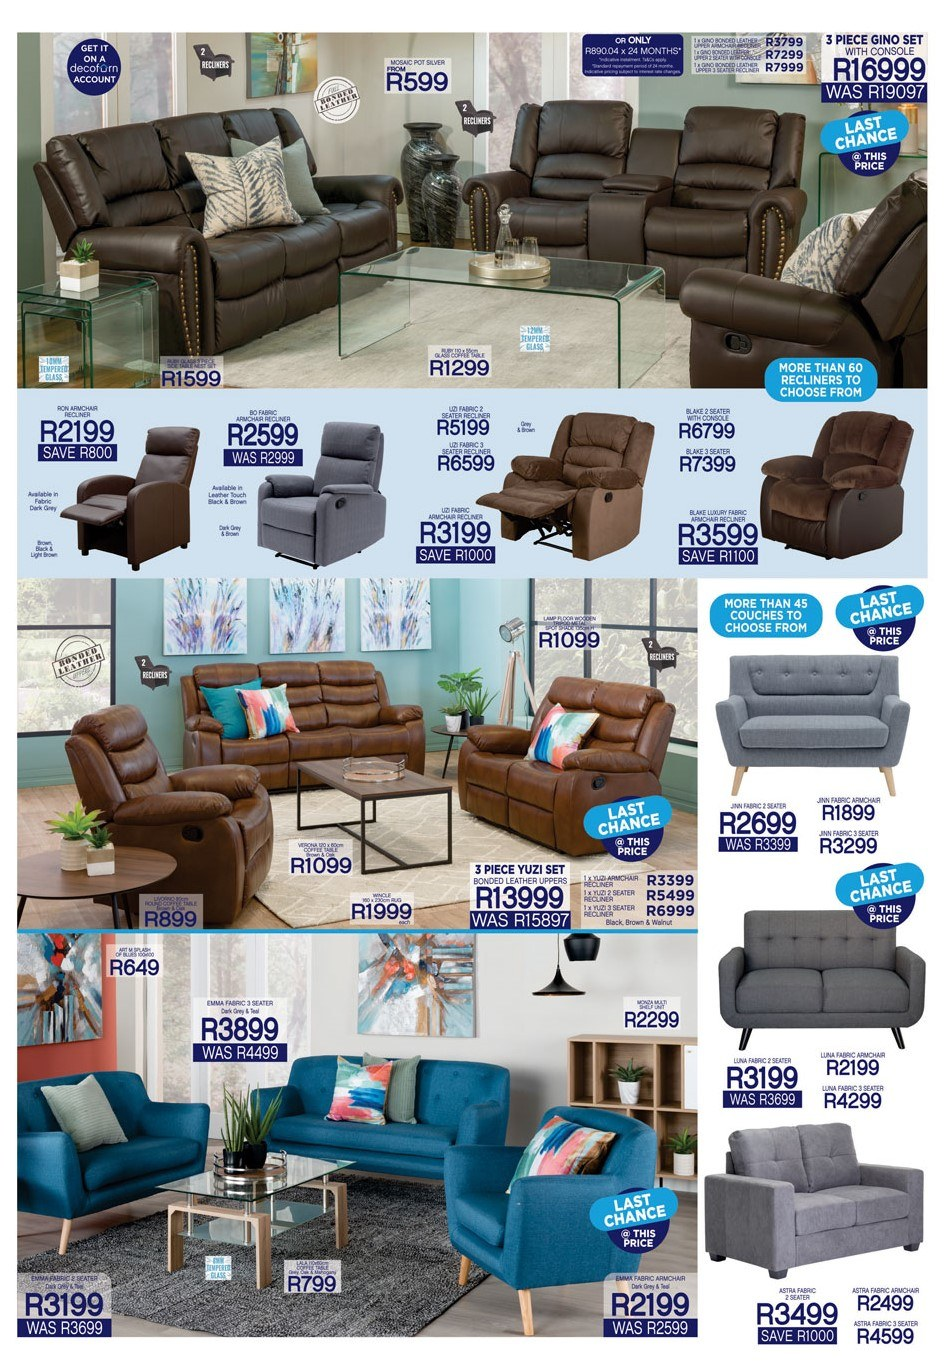 Decofurn Factory Shop catalogue . Page 3.